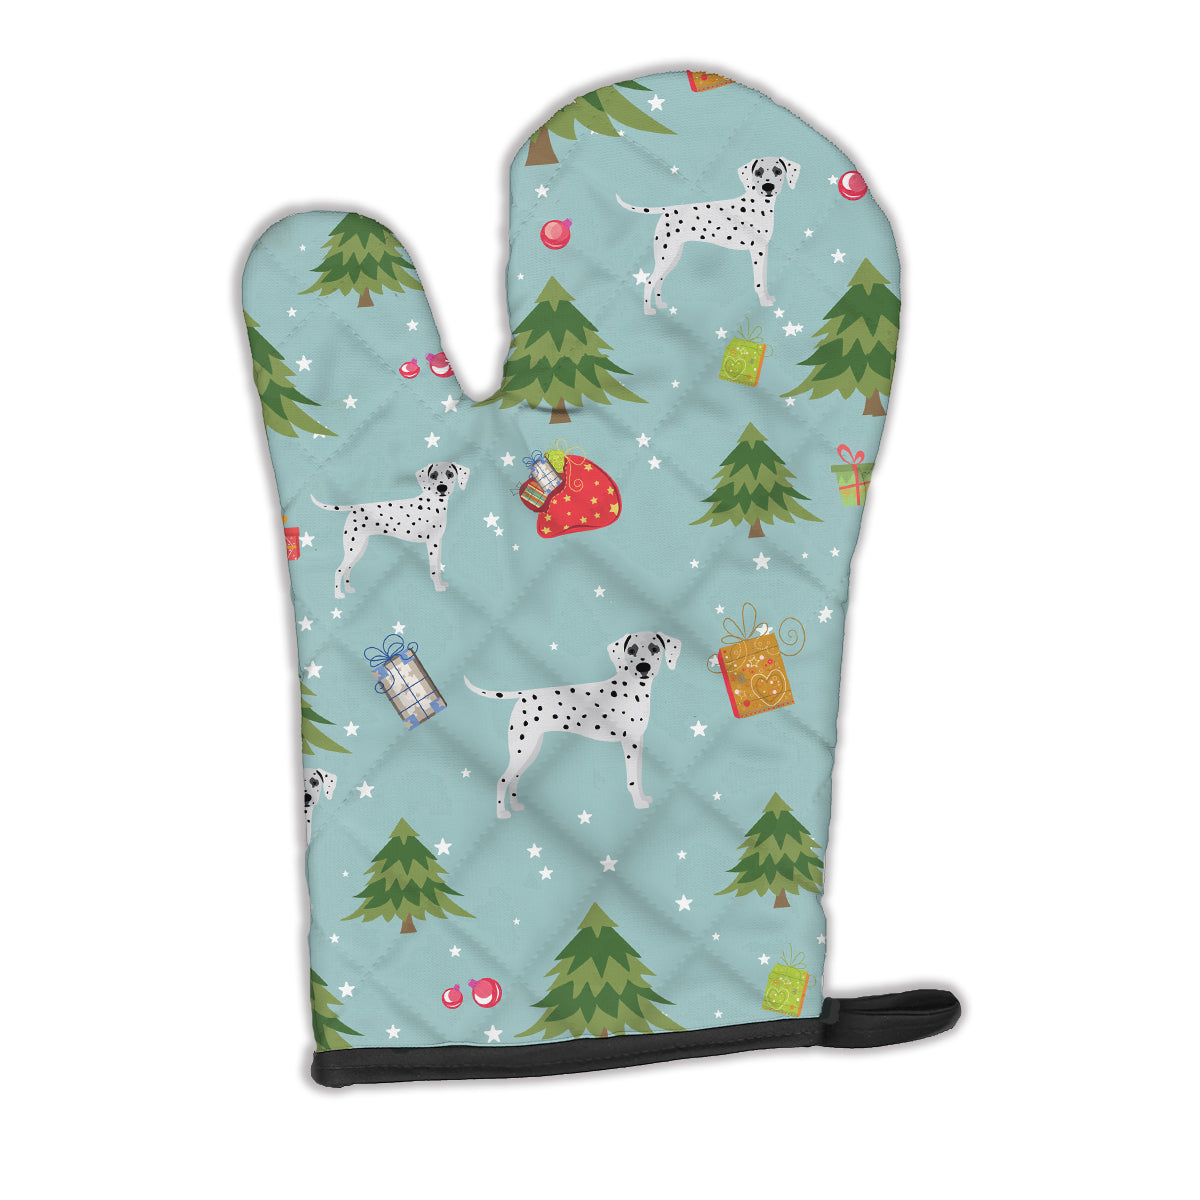 Christmas Dalmatian Oven Mitt BB4940OVMT by Caroline's Treasures